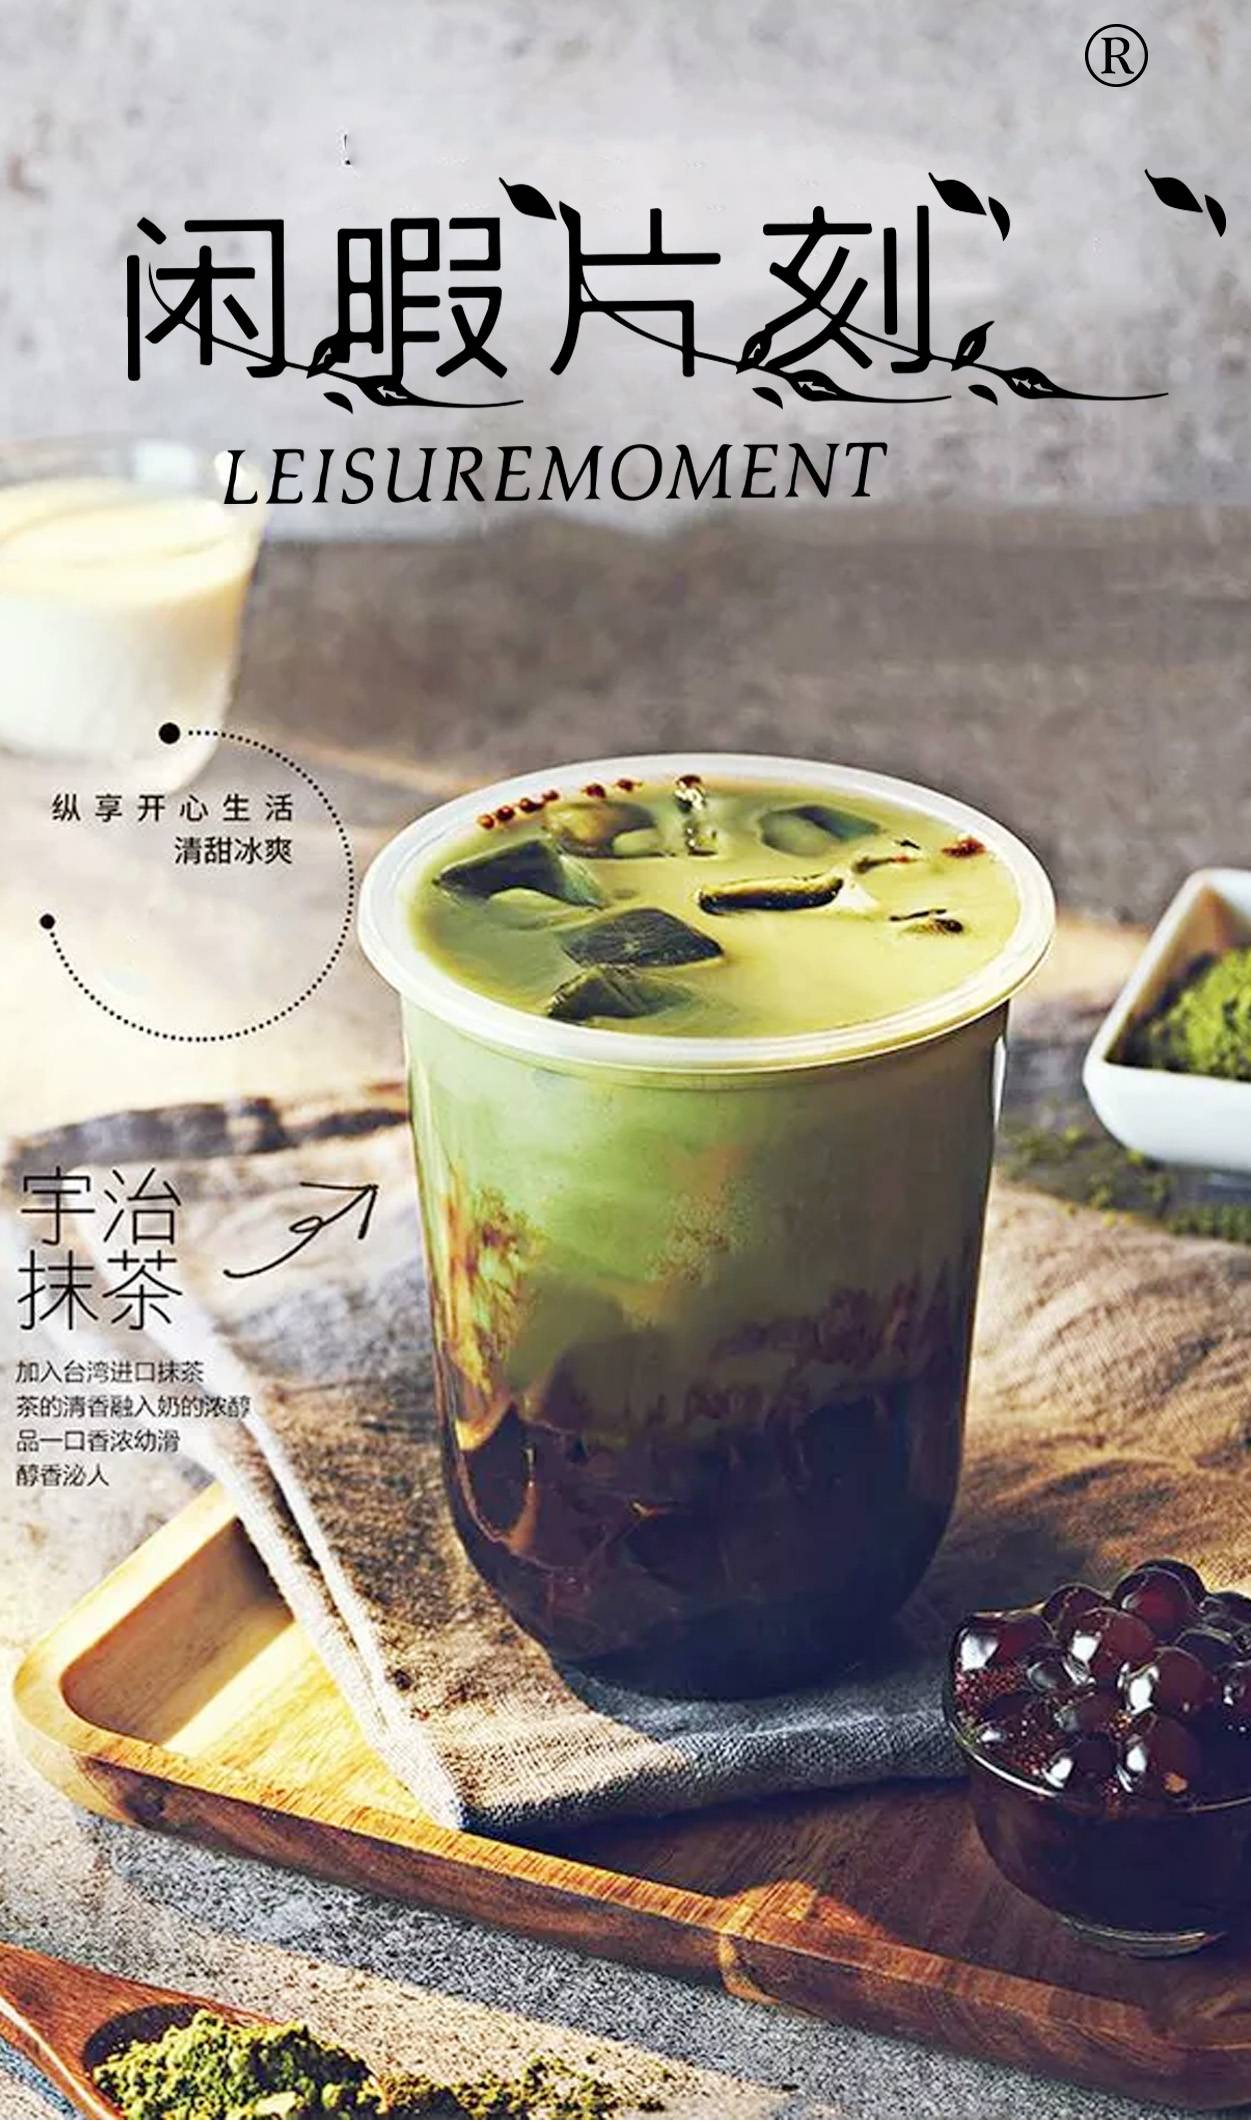 闲暇片刻 LEISUREMOMENT